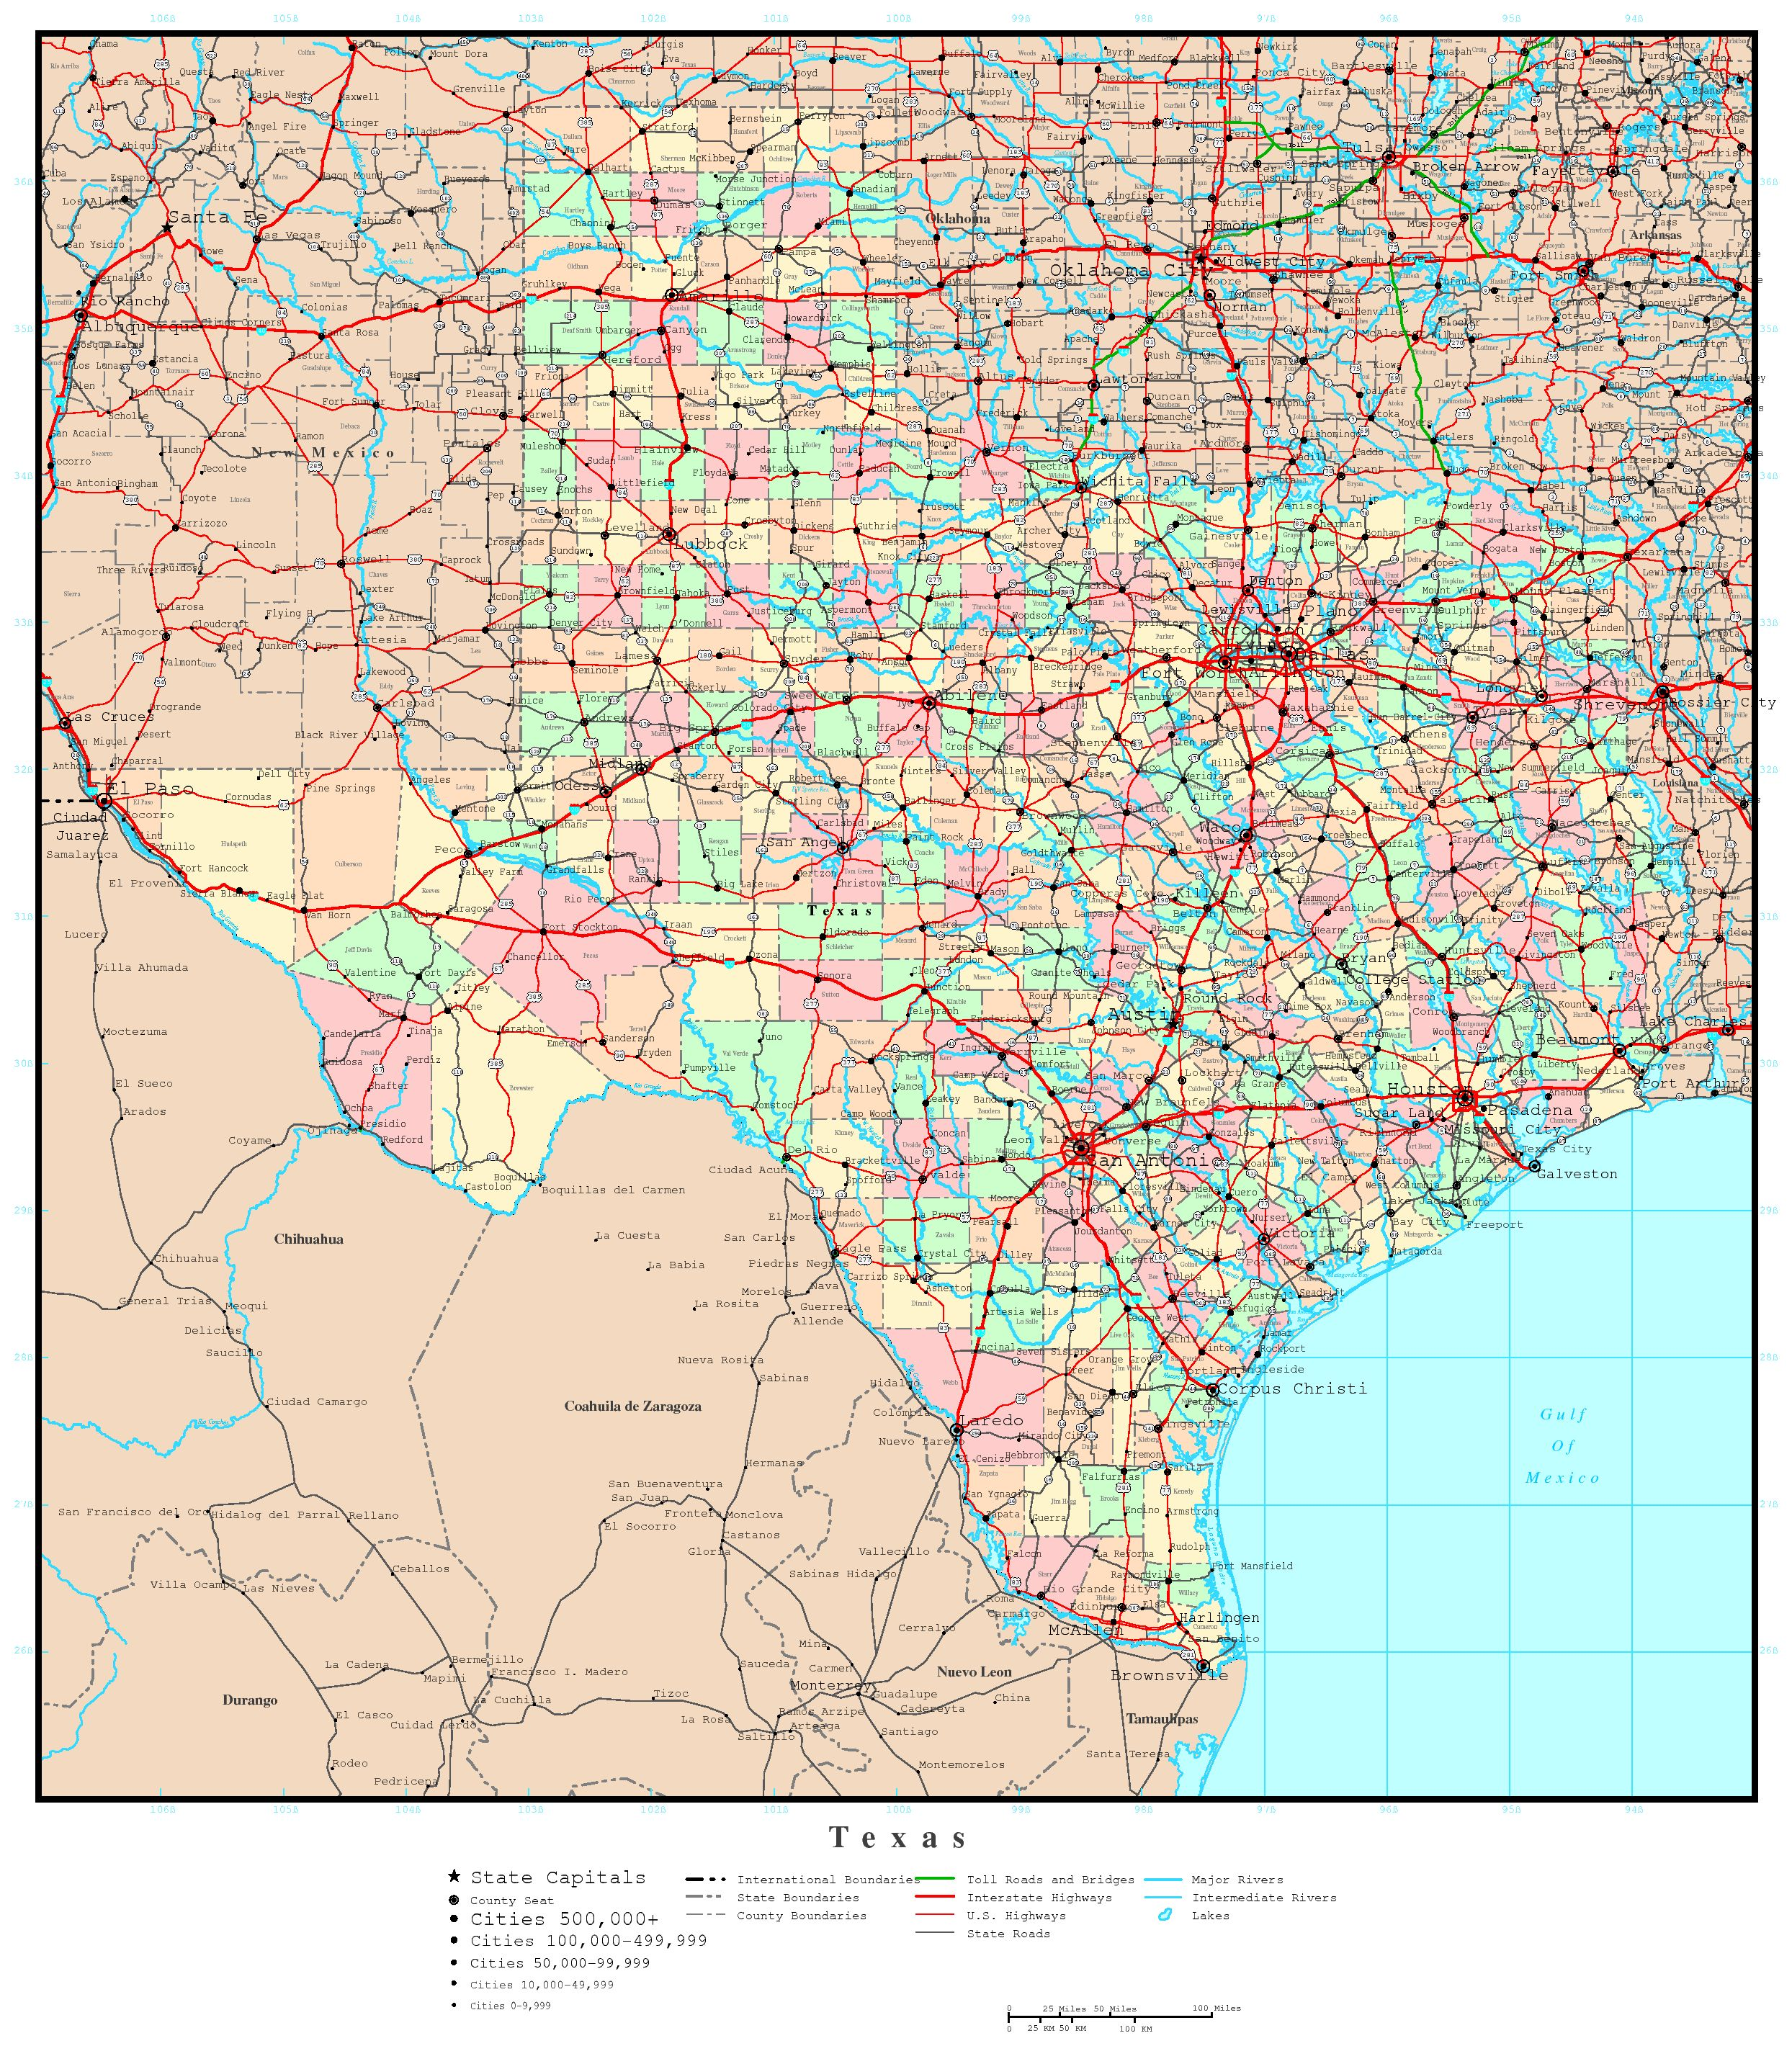 Texas Political Map - Texa map